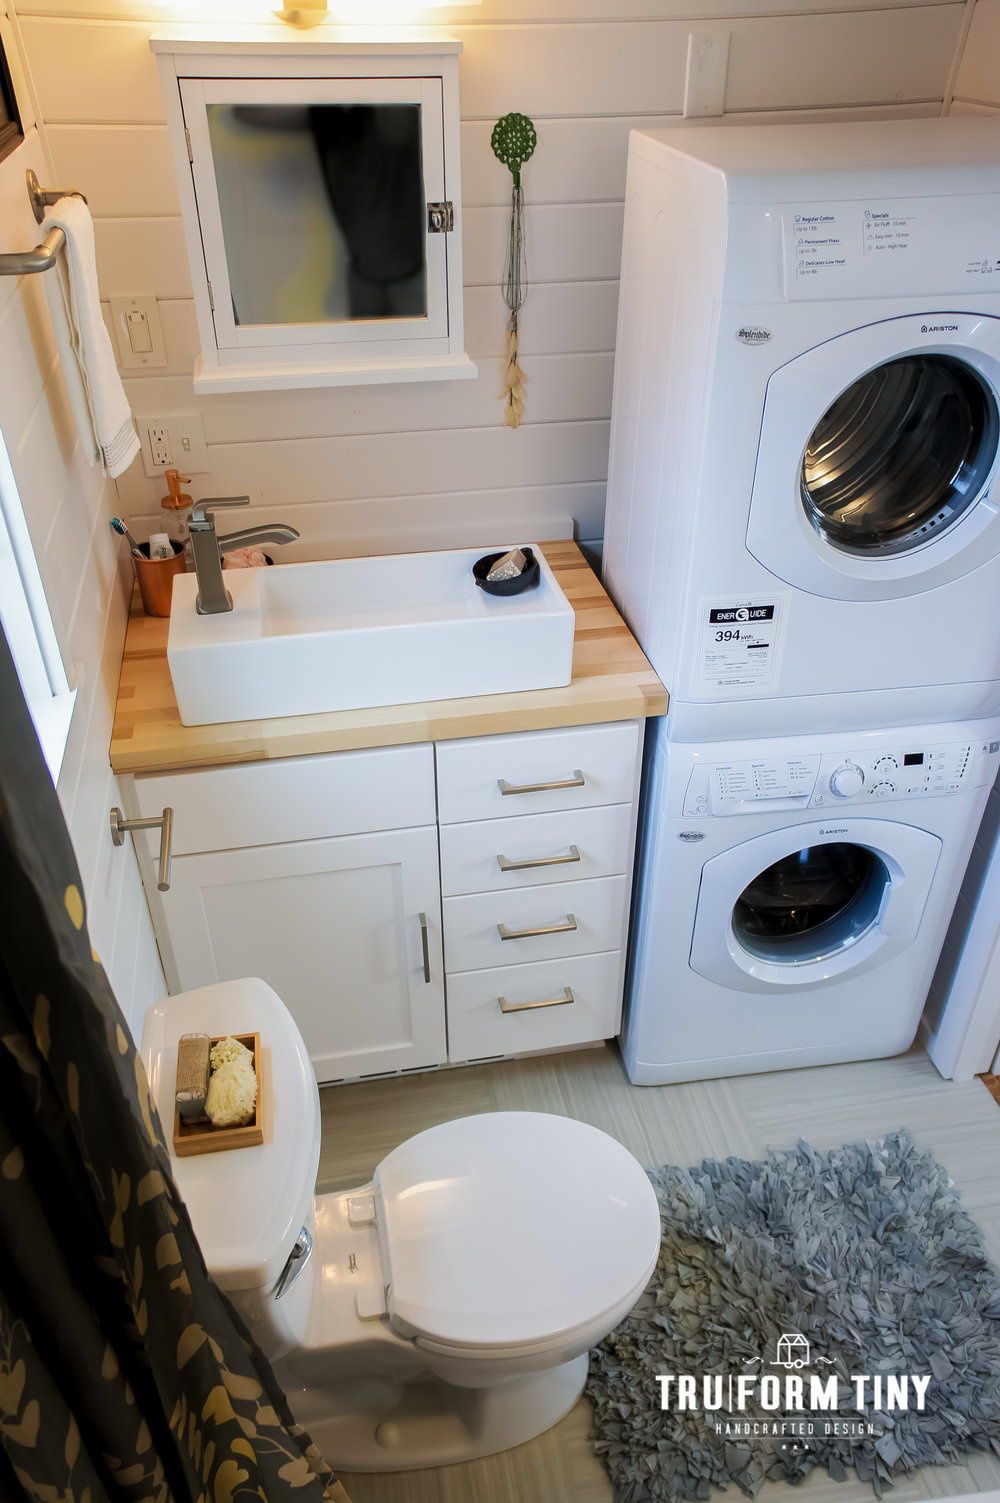 TINY HOUSE TOWN The Payette V3 From Truform Tiny Homes